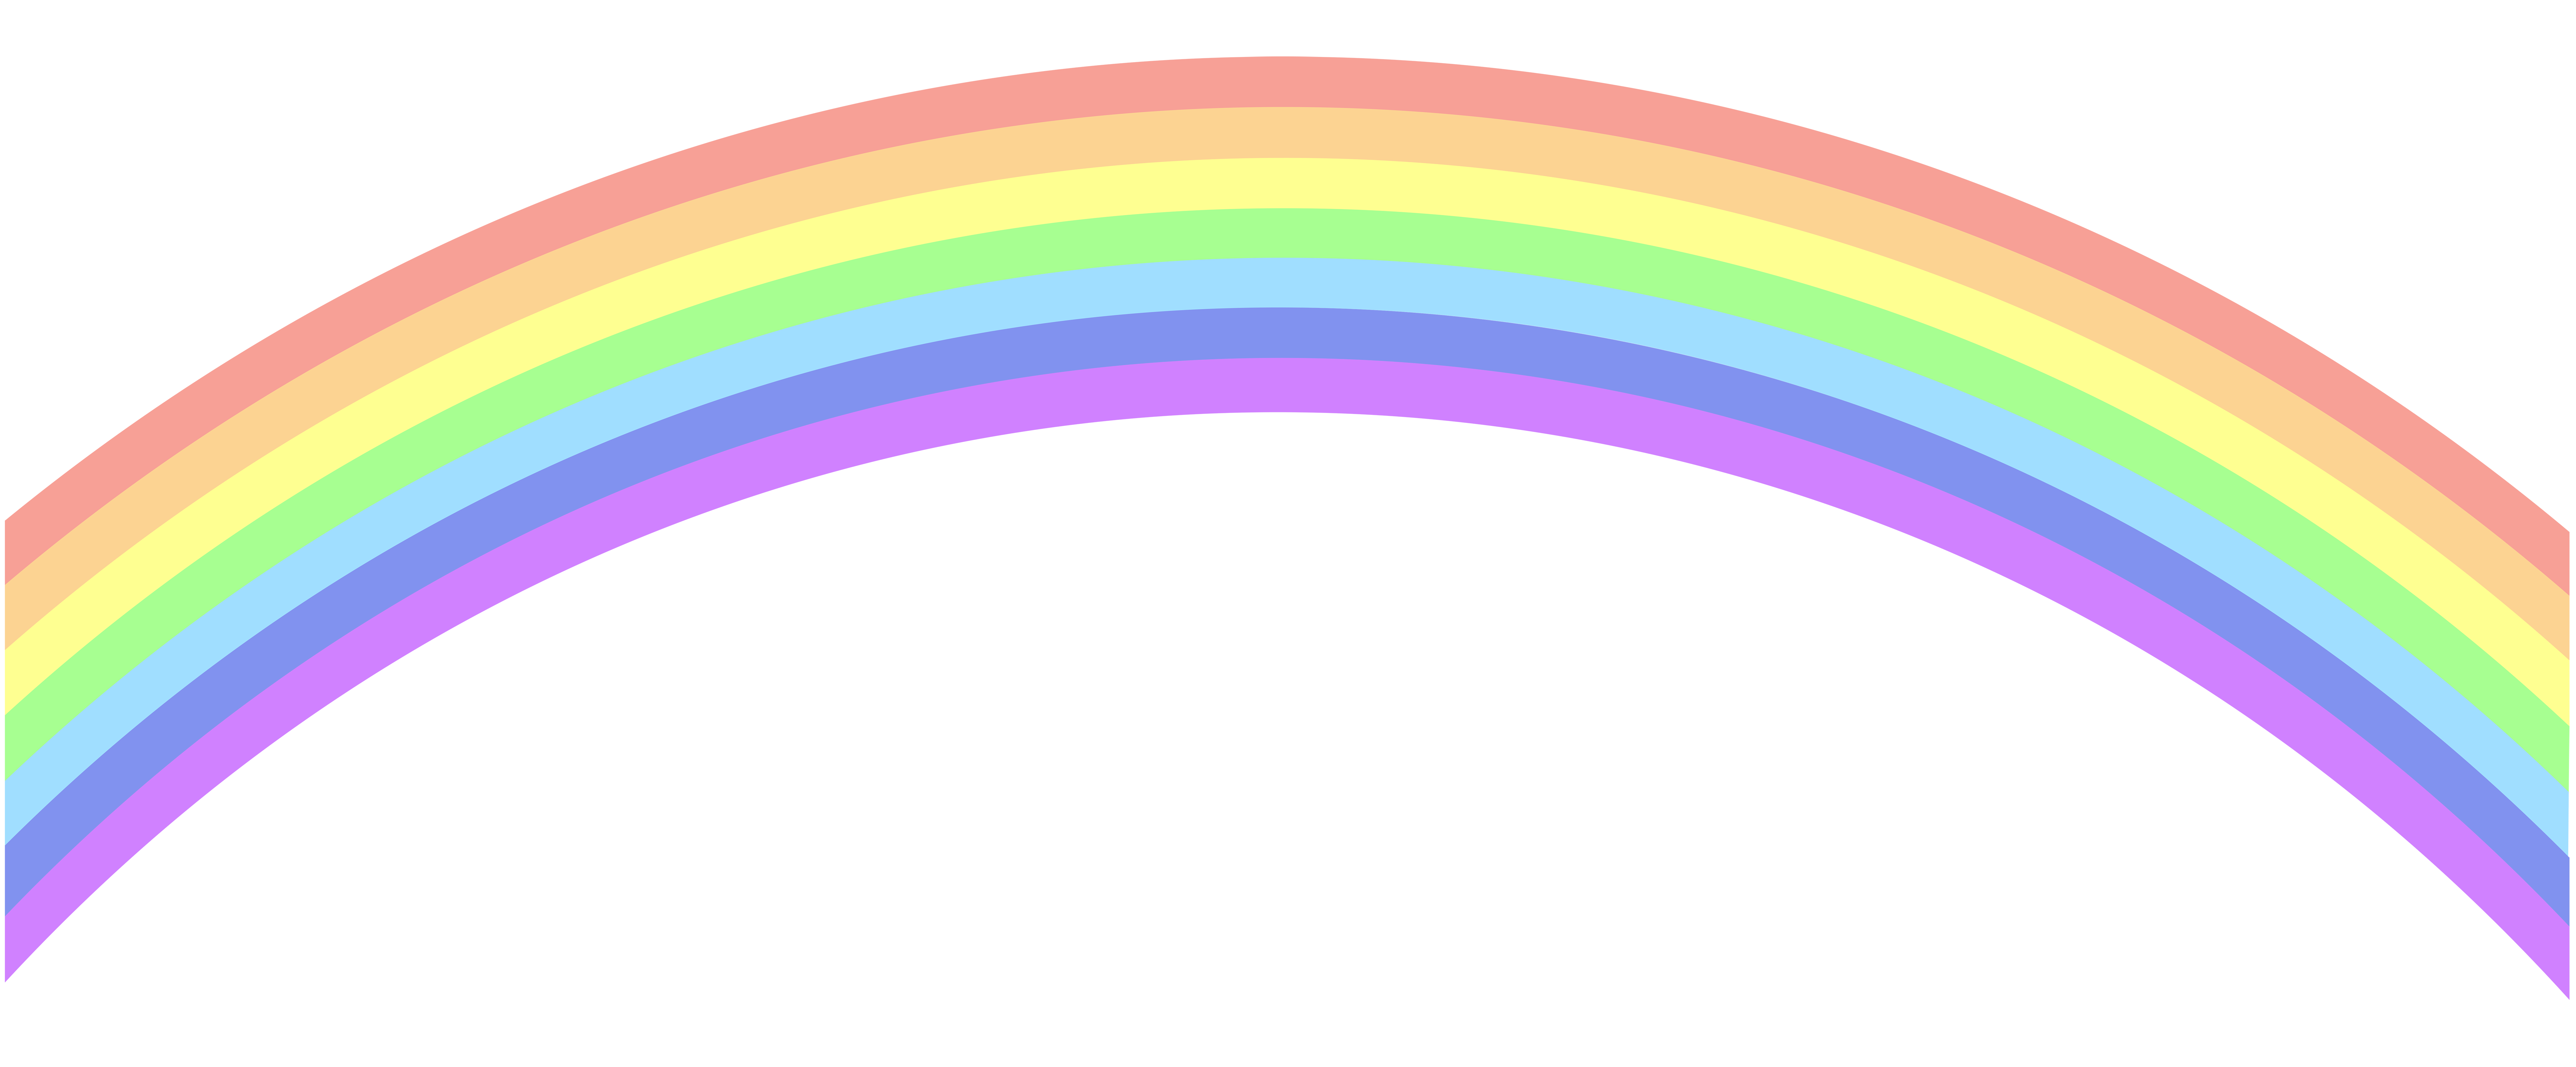 clipart library library Rainbow clipart. Clip art png image